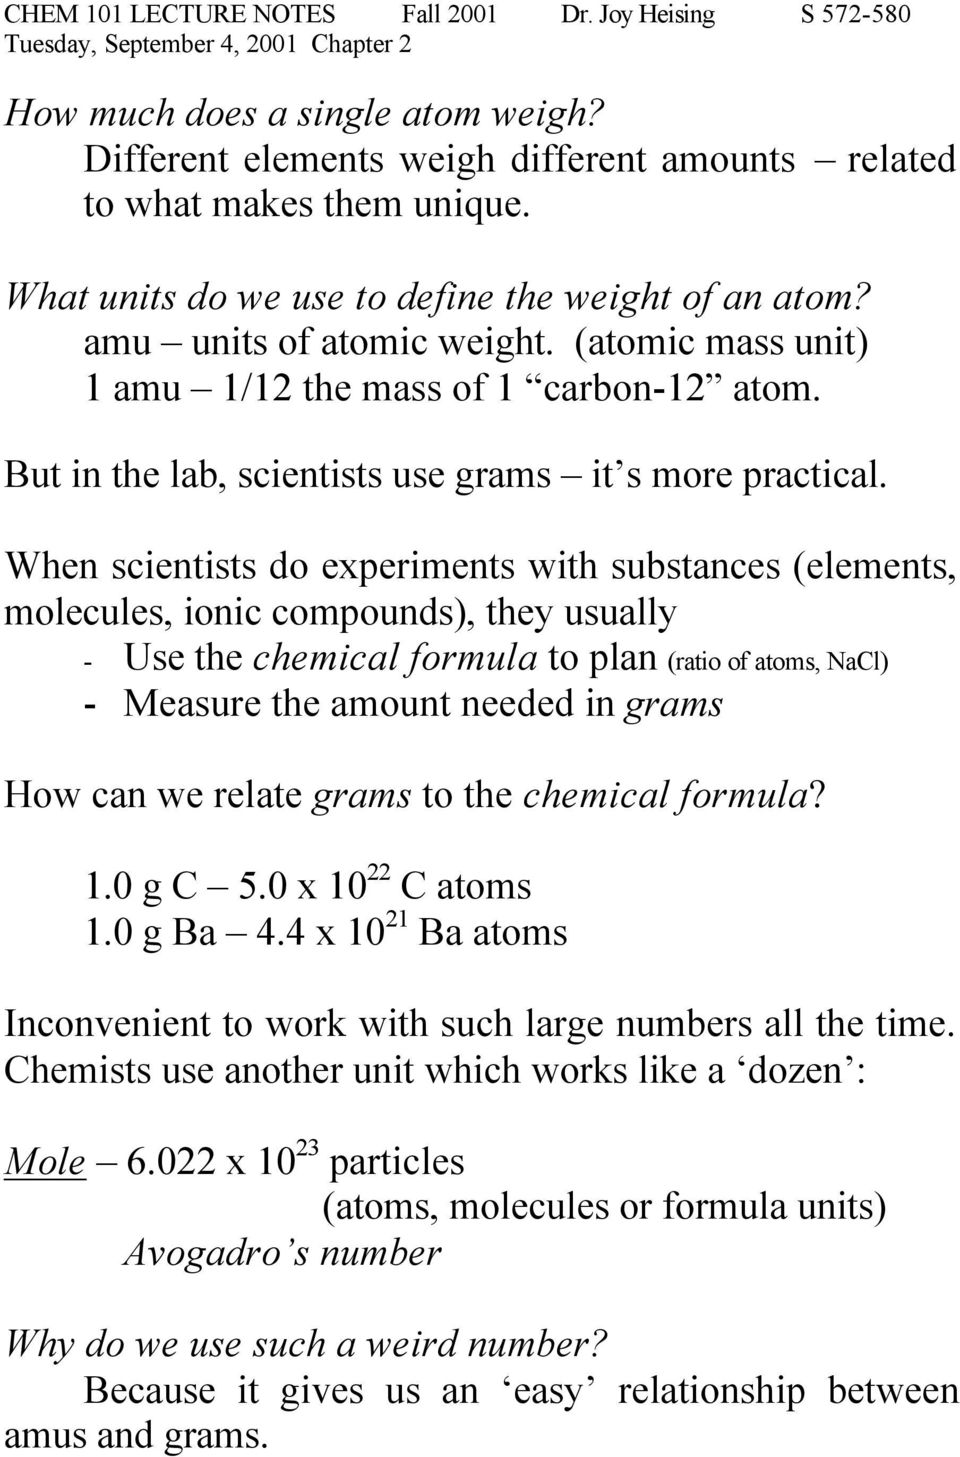 When scientists do experiments with substances (elements, molecules, ionic compounds), they usually - Use the chemical formula to plan (ratio of atoms, NaCl) - Measure the amount needed in grams How